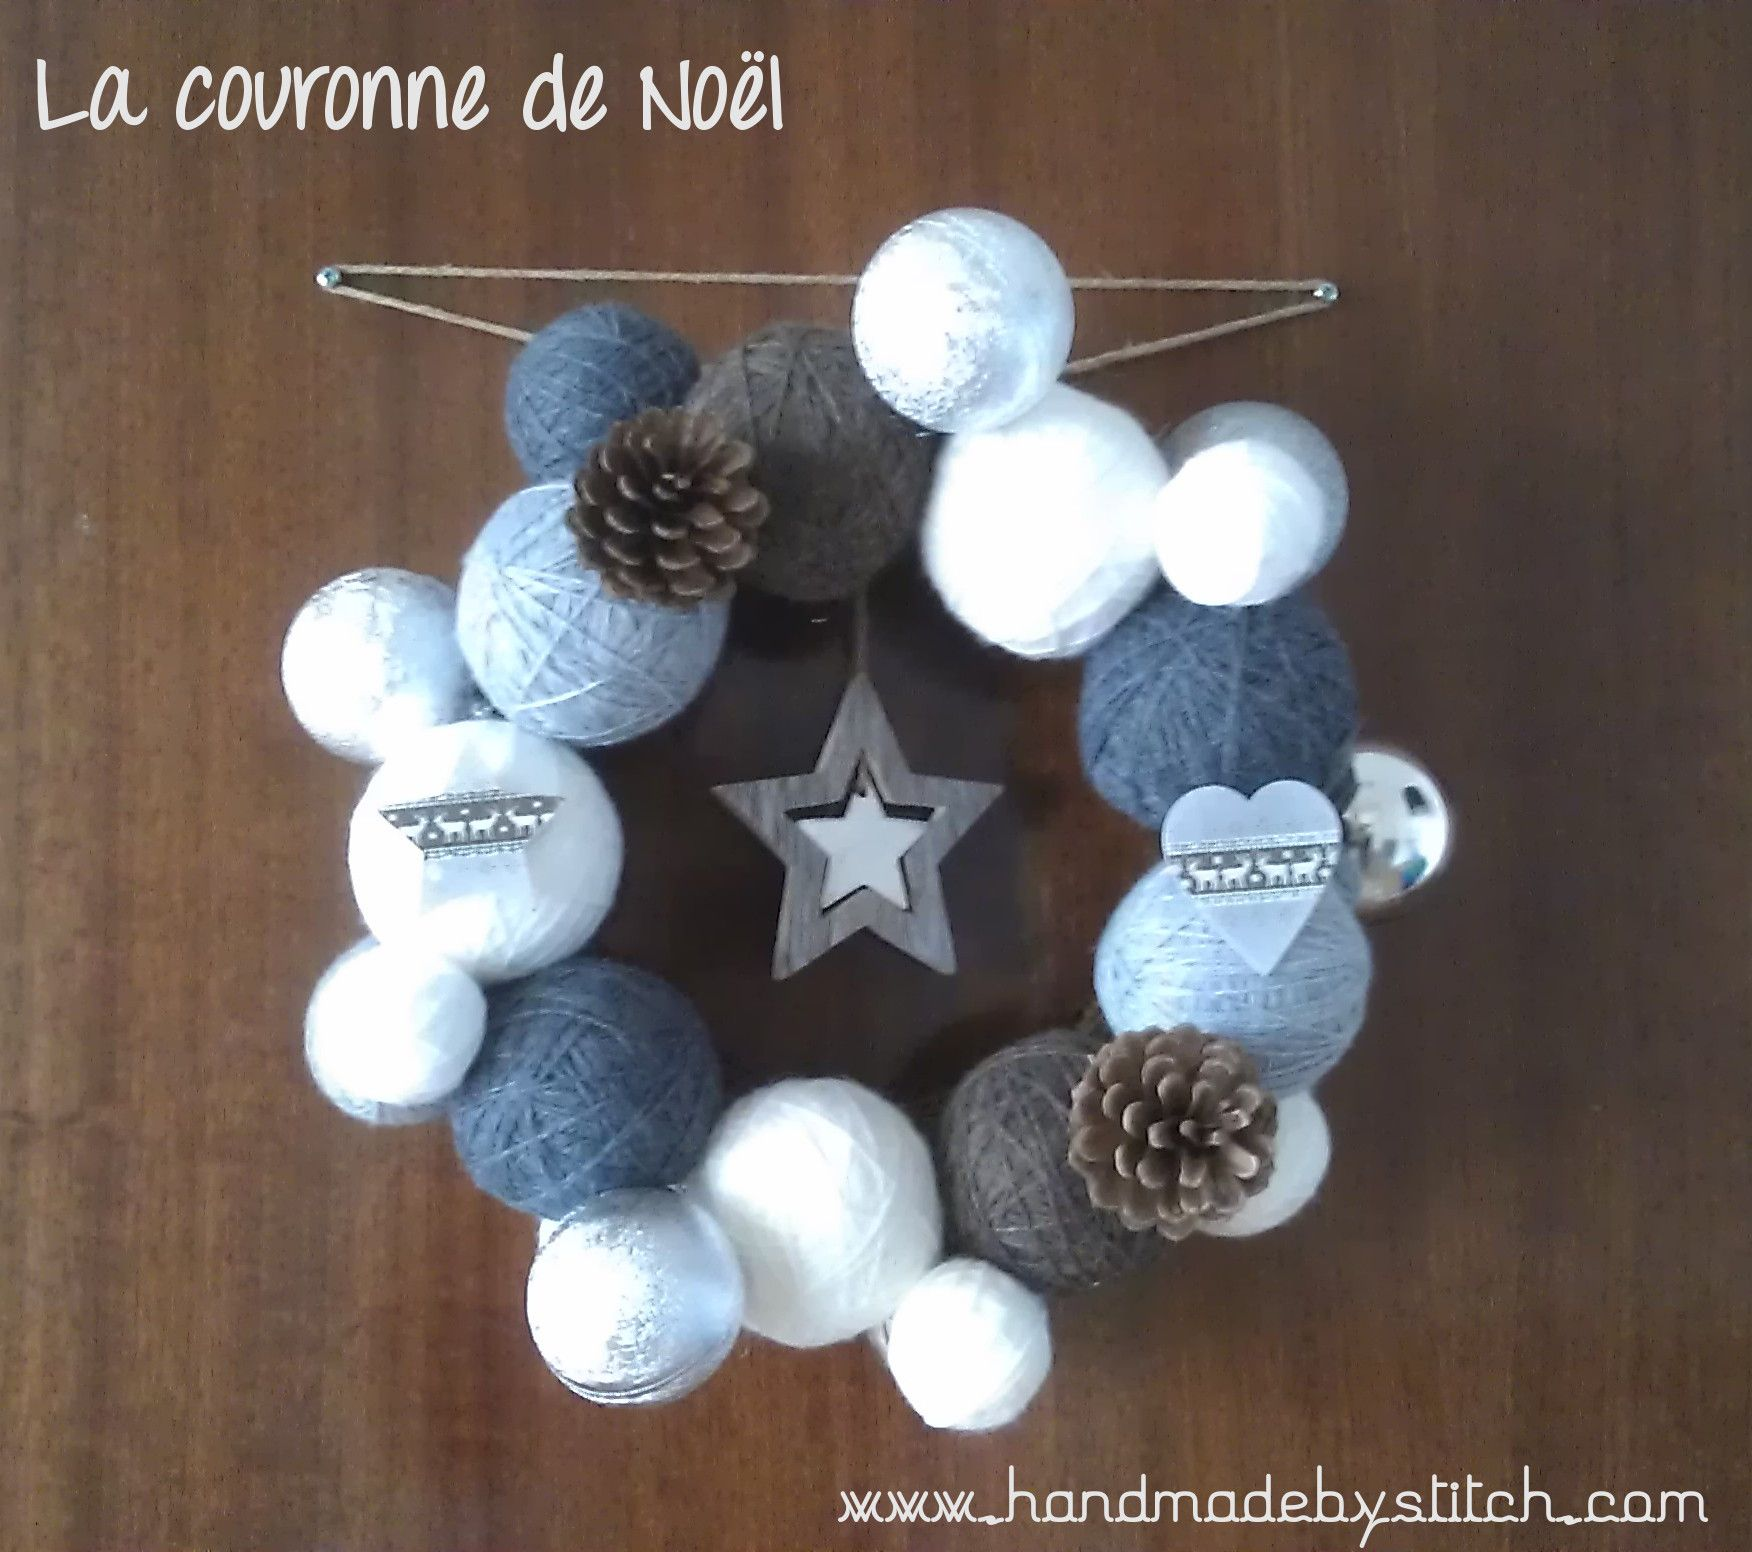 diy couronne de no l en boules de laine noel pinterest autre chose comment faire et boule. Black Bedroom Furniture Sets. Home Design Ideas